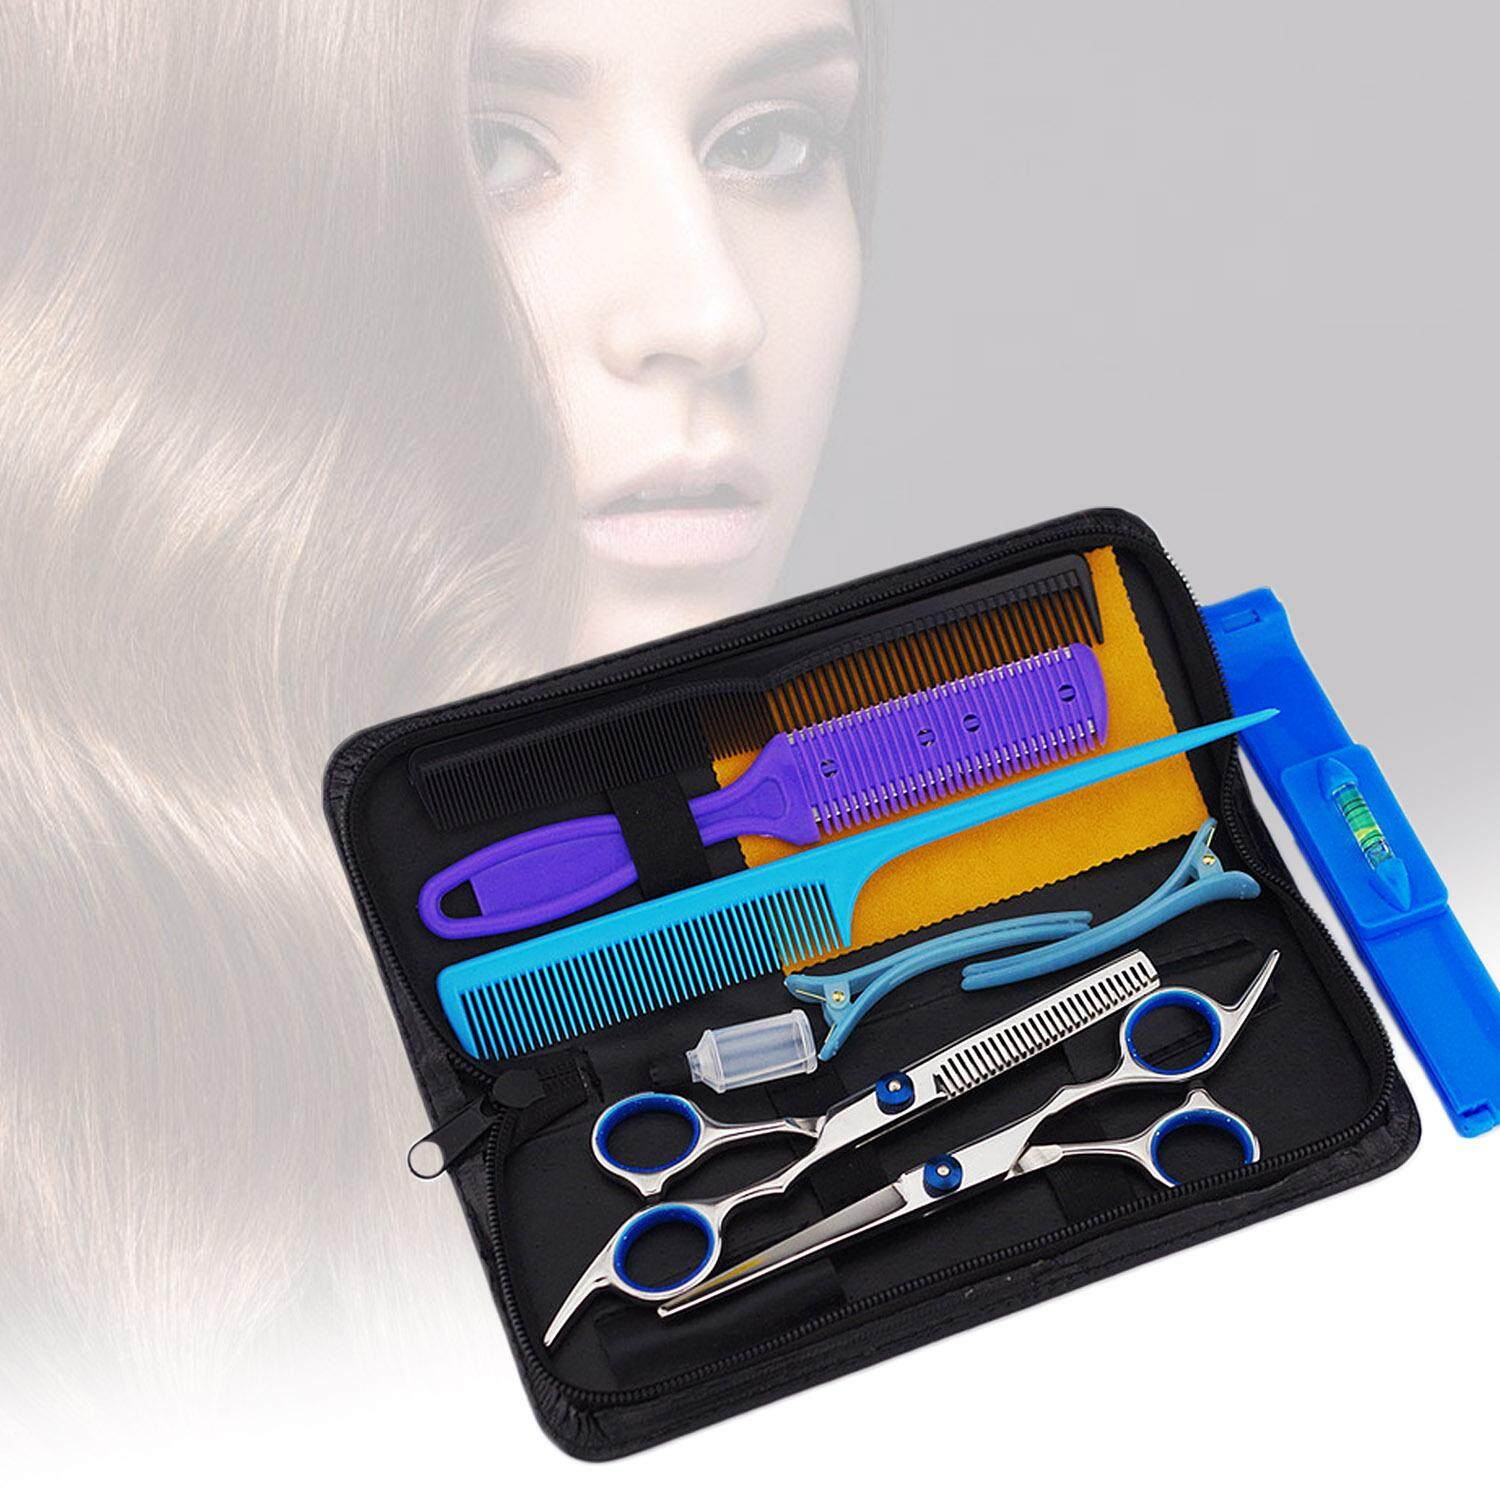 10pcs Professional Hairdressing Scissors Tools Kit Comb Hair Clip With Storage Bag Case For Family Home Hair Cutting - Intl By Stoneky.